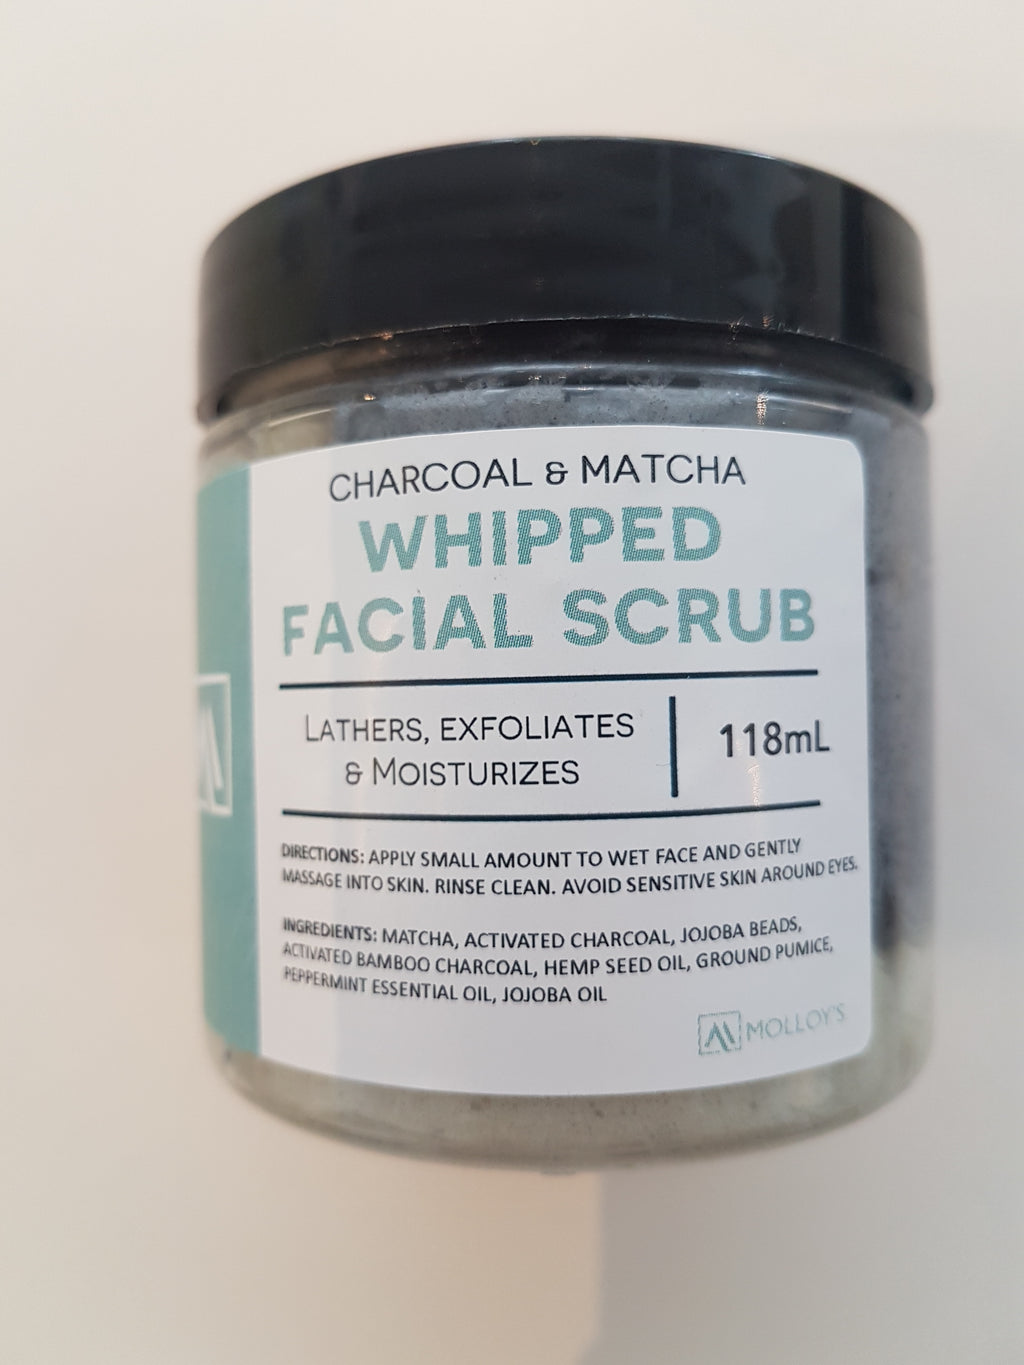 Whipped Facial Scrub: Charcoal and Matcha